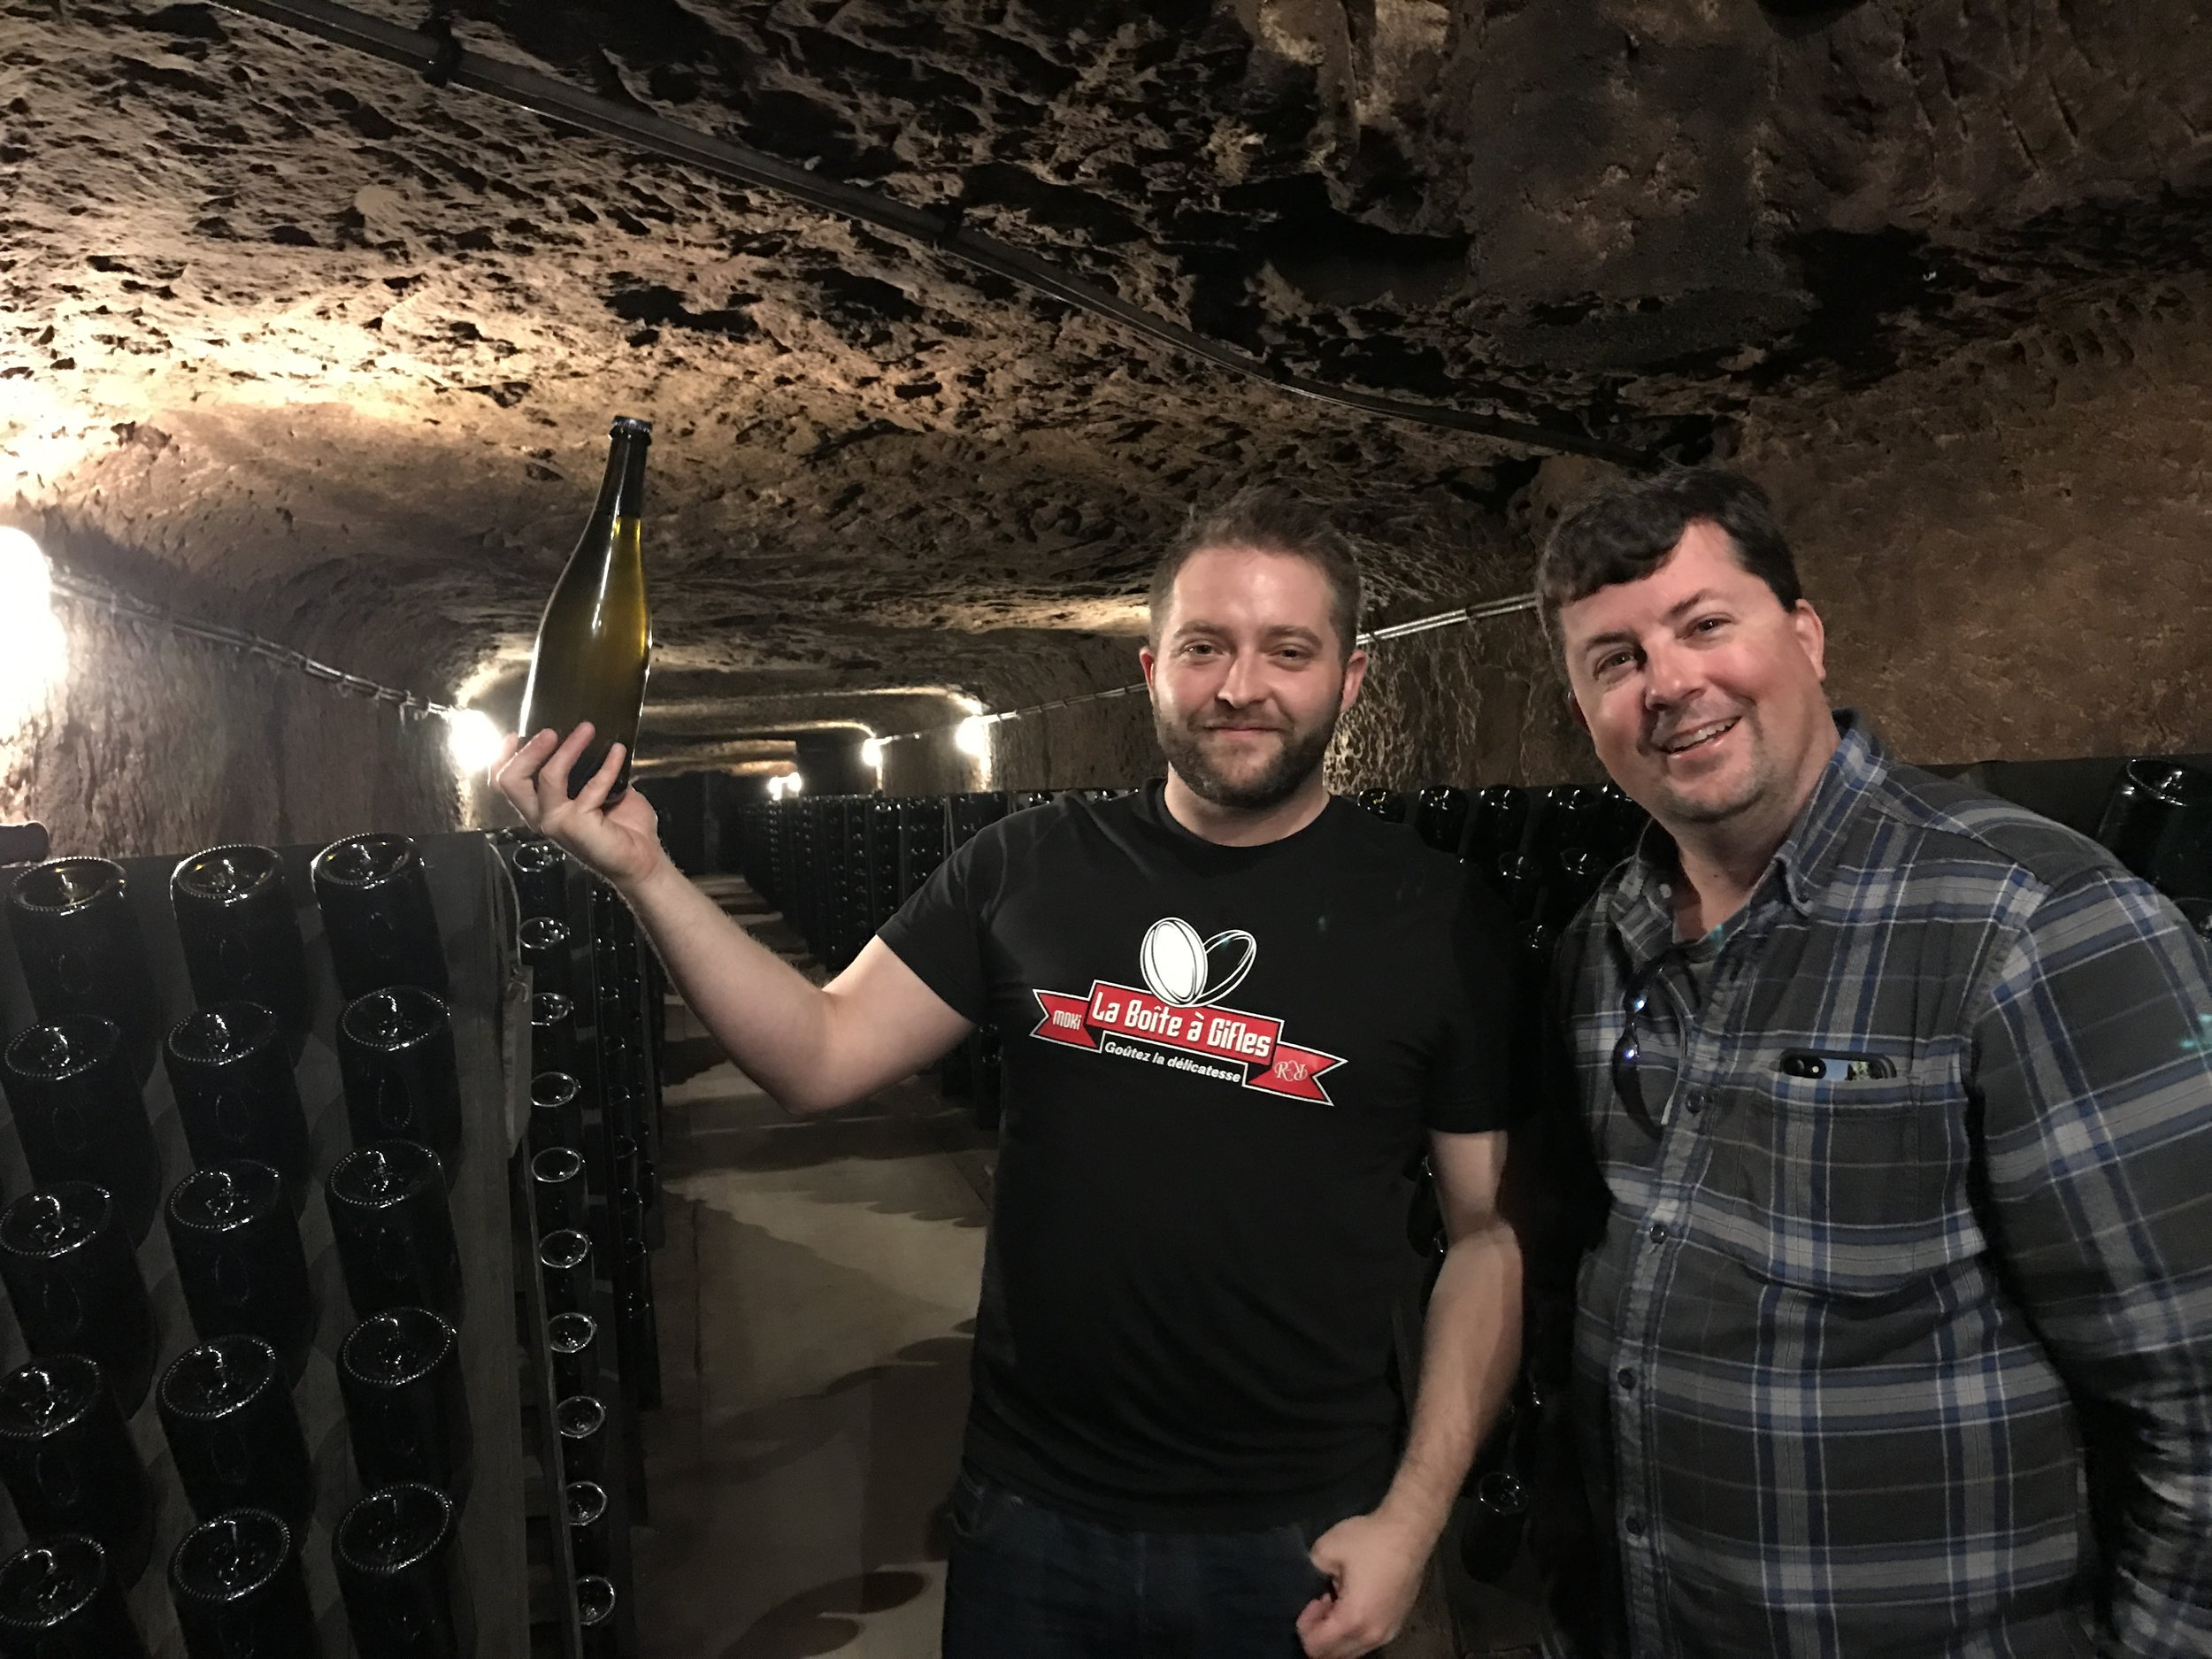 Jean and Jeff in the D.Huet sparkling wine cave